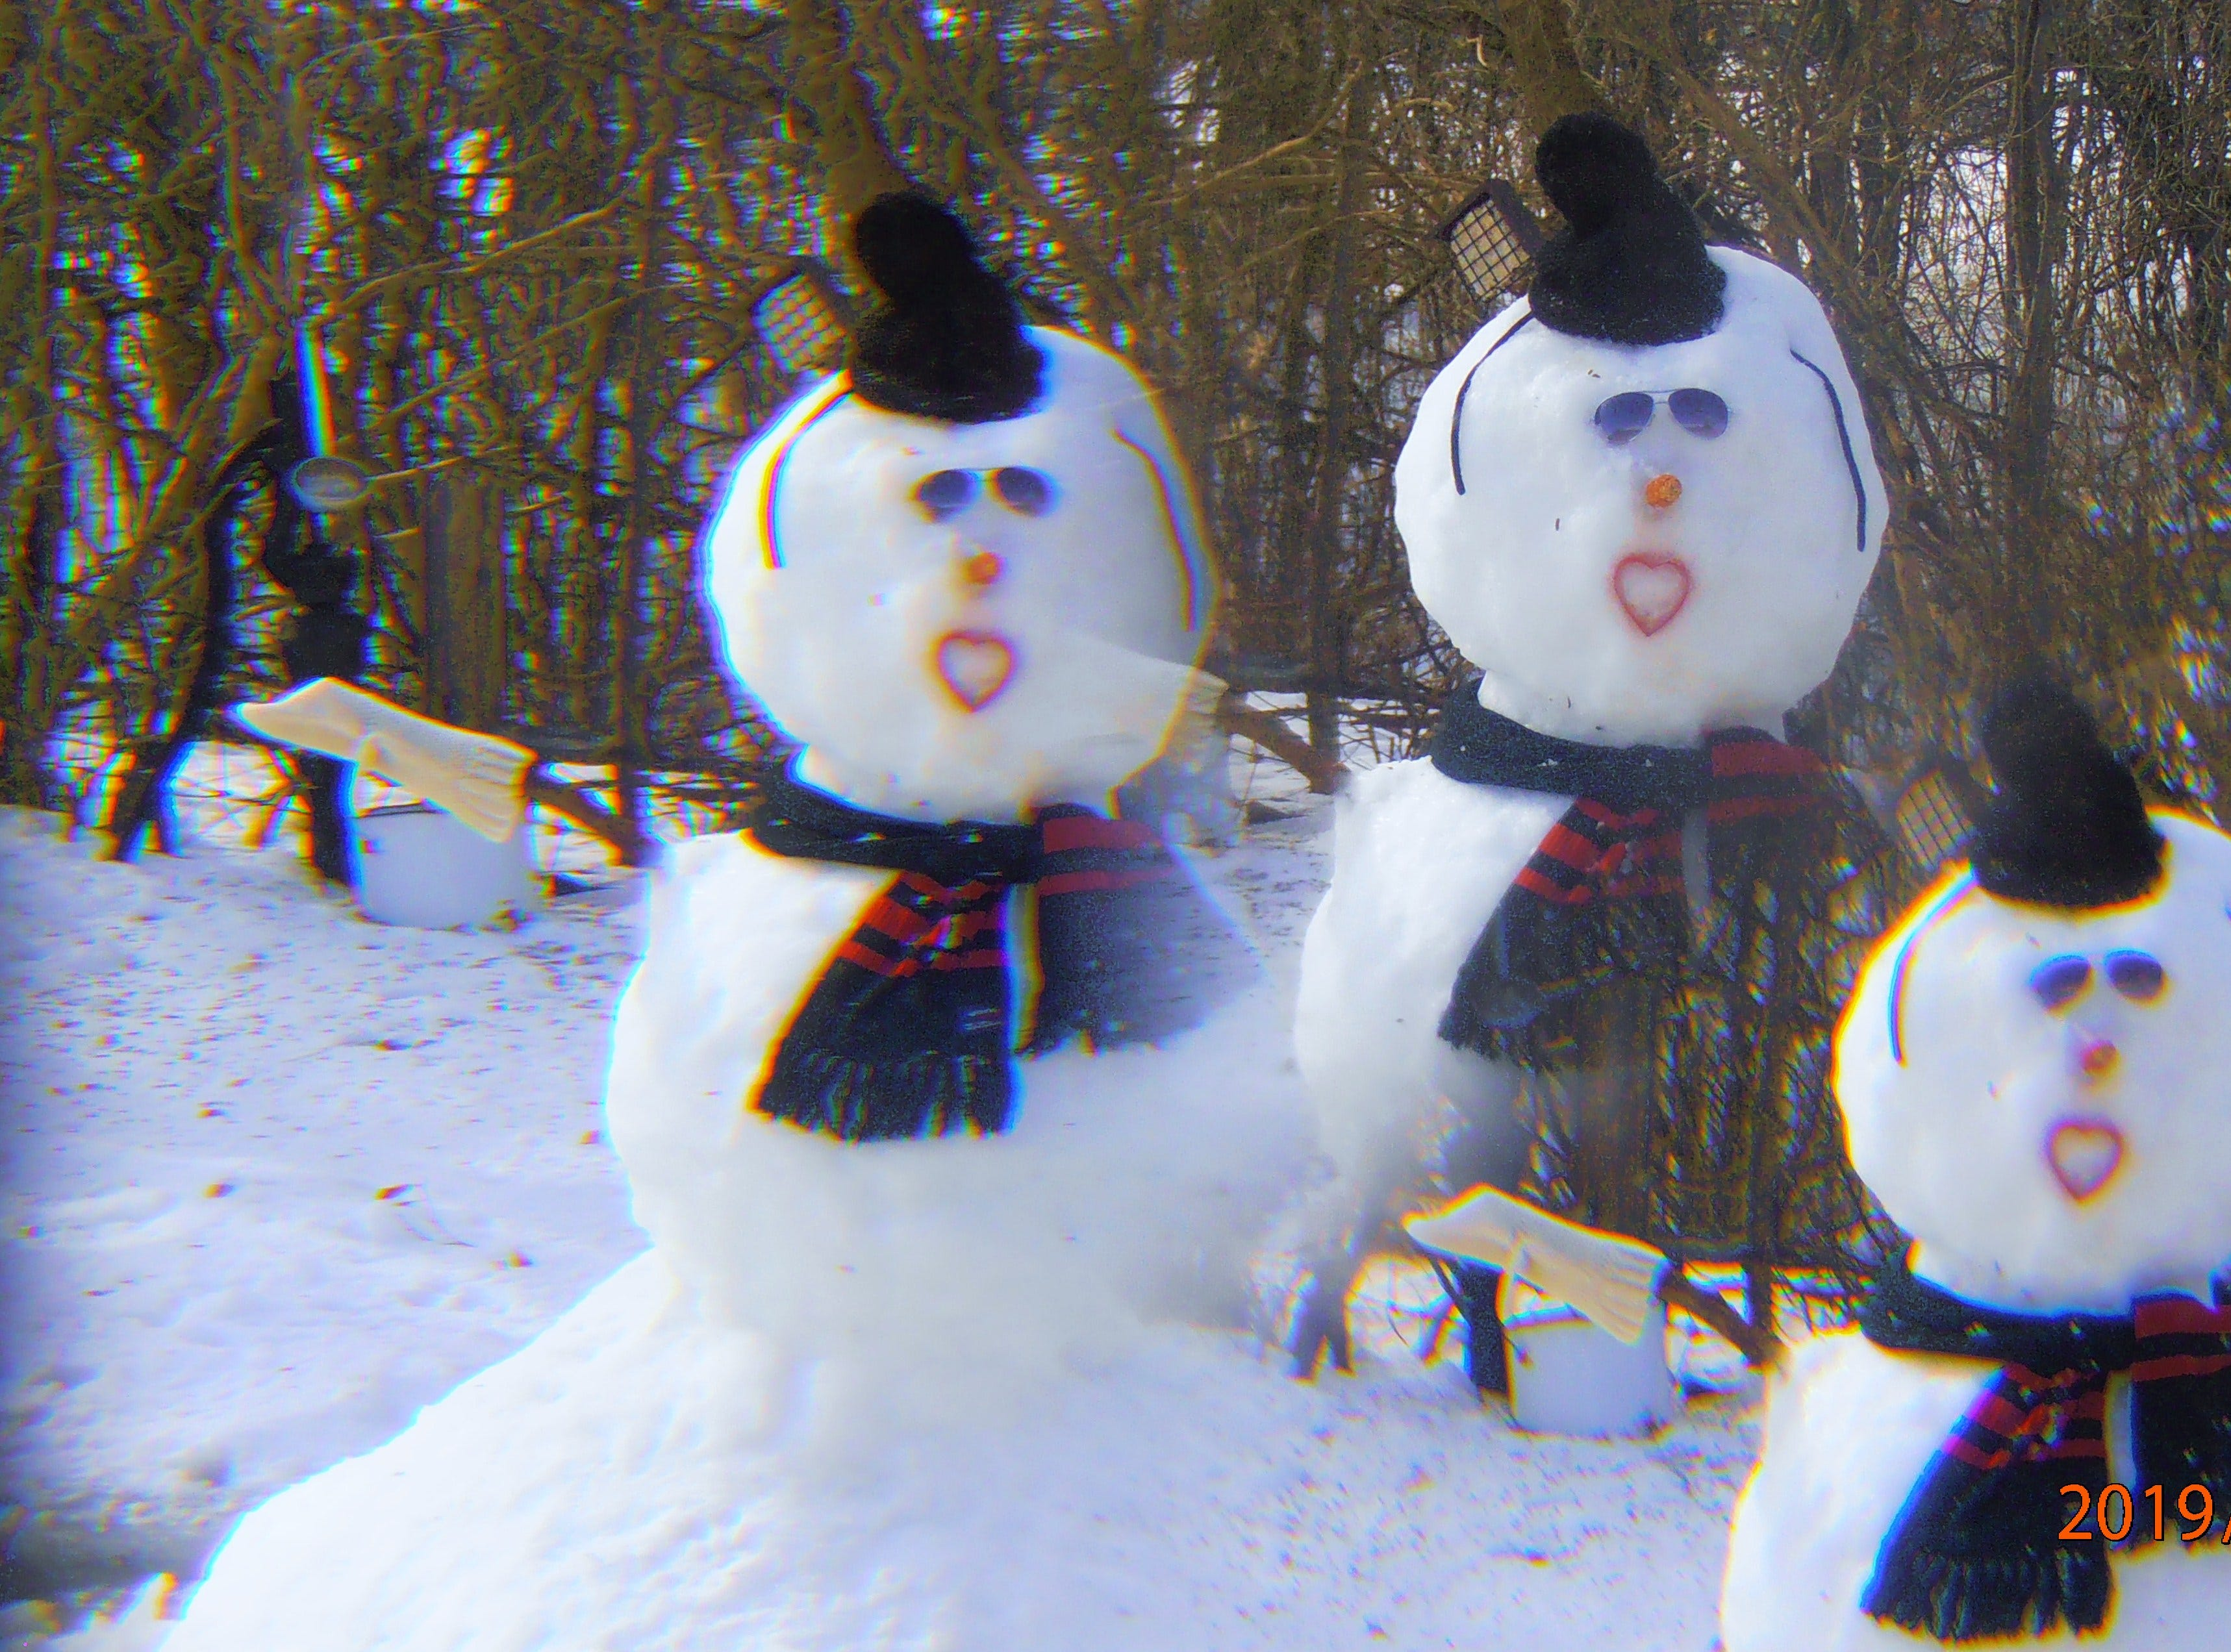 One of the Hemauers' snowmen as seen through a sun catcher. Linda and Dennis are retired and enjoy creating and decorating snowmen.